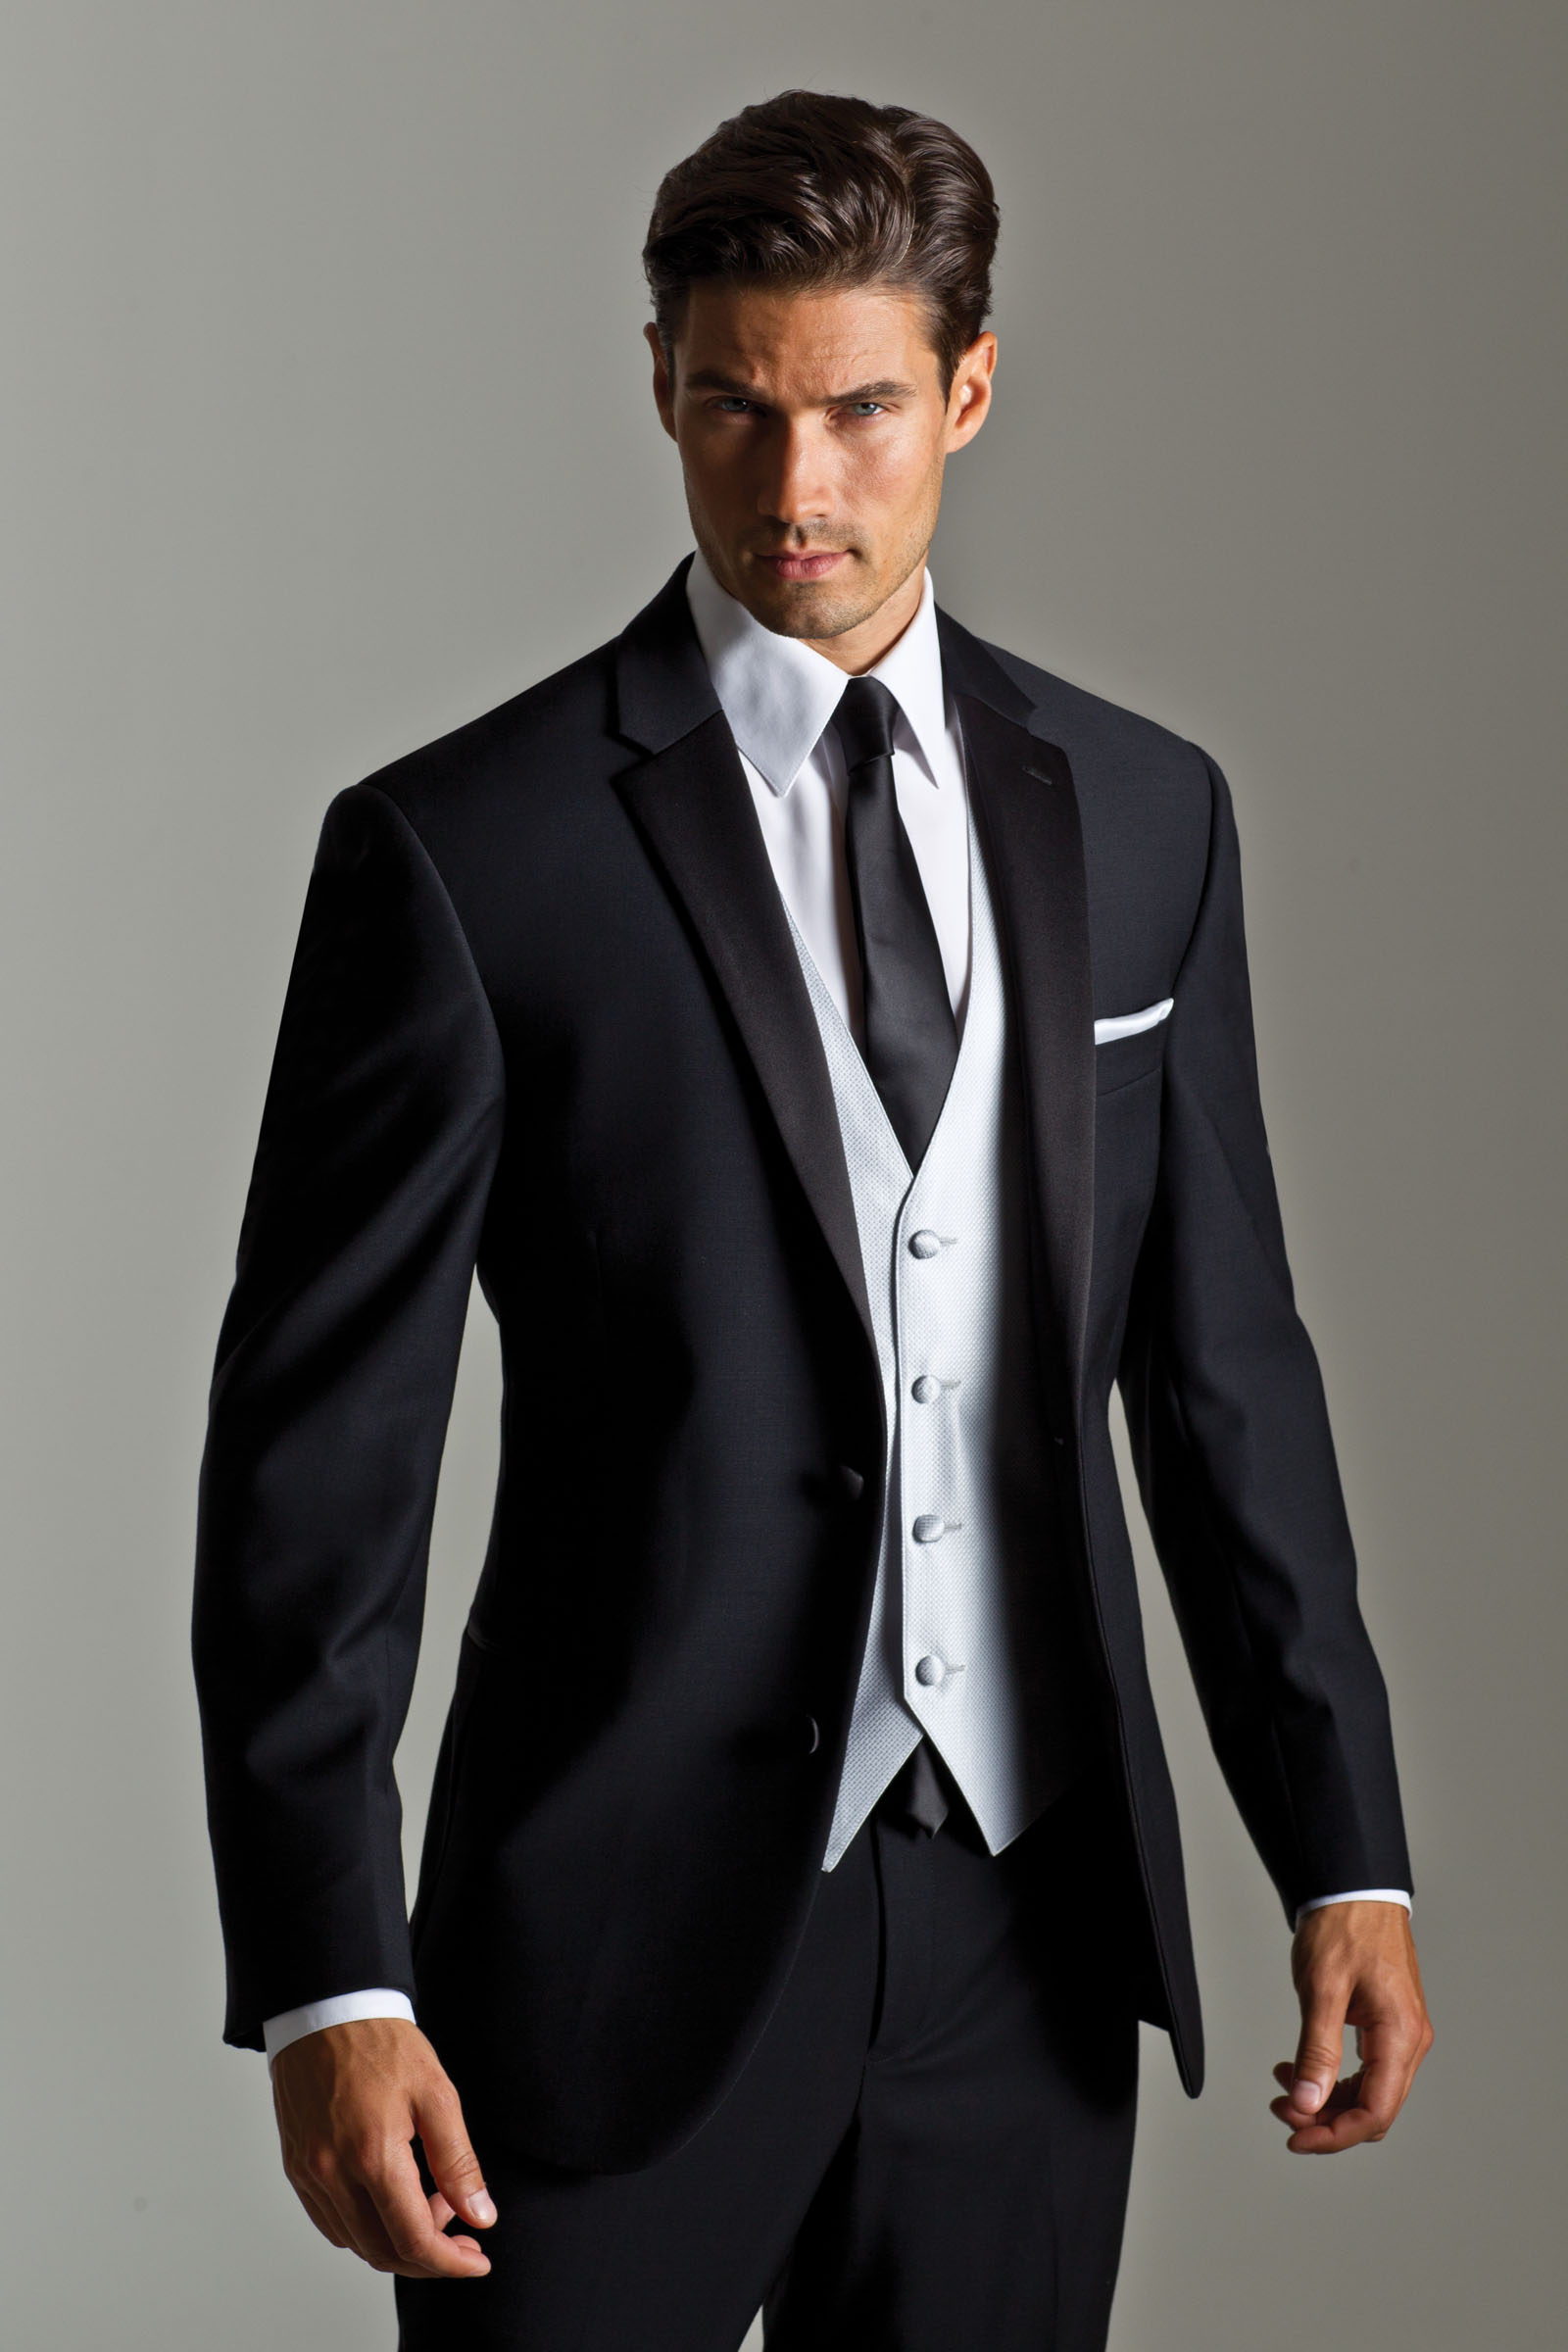 Wedding tuxedos cheap or expensive careyfashion junglespirit Choice Image